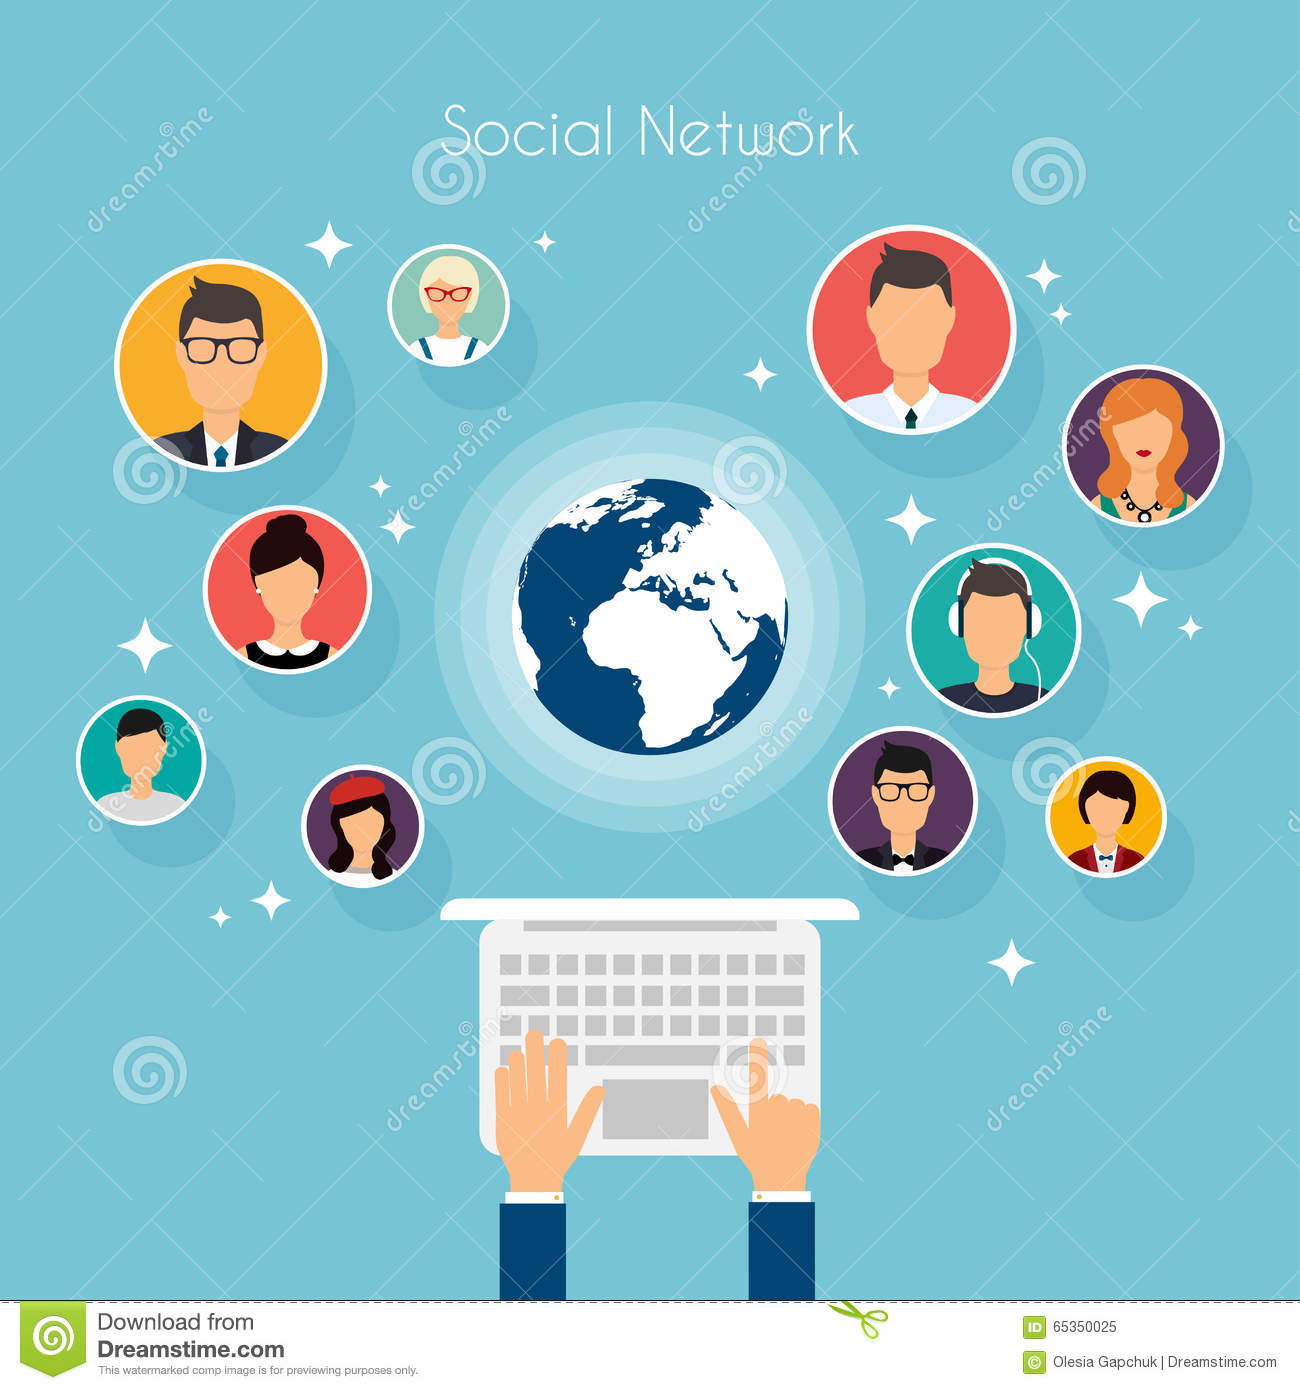 My 1st put up social-network-vector-concept-flat-design-illustration-web-sites-infographic-human-hand-laptop-avatars-set-65350025